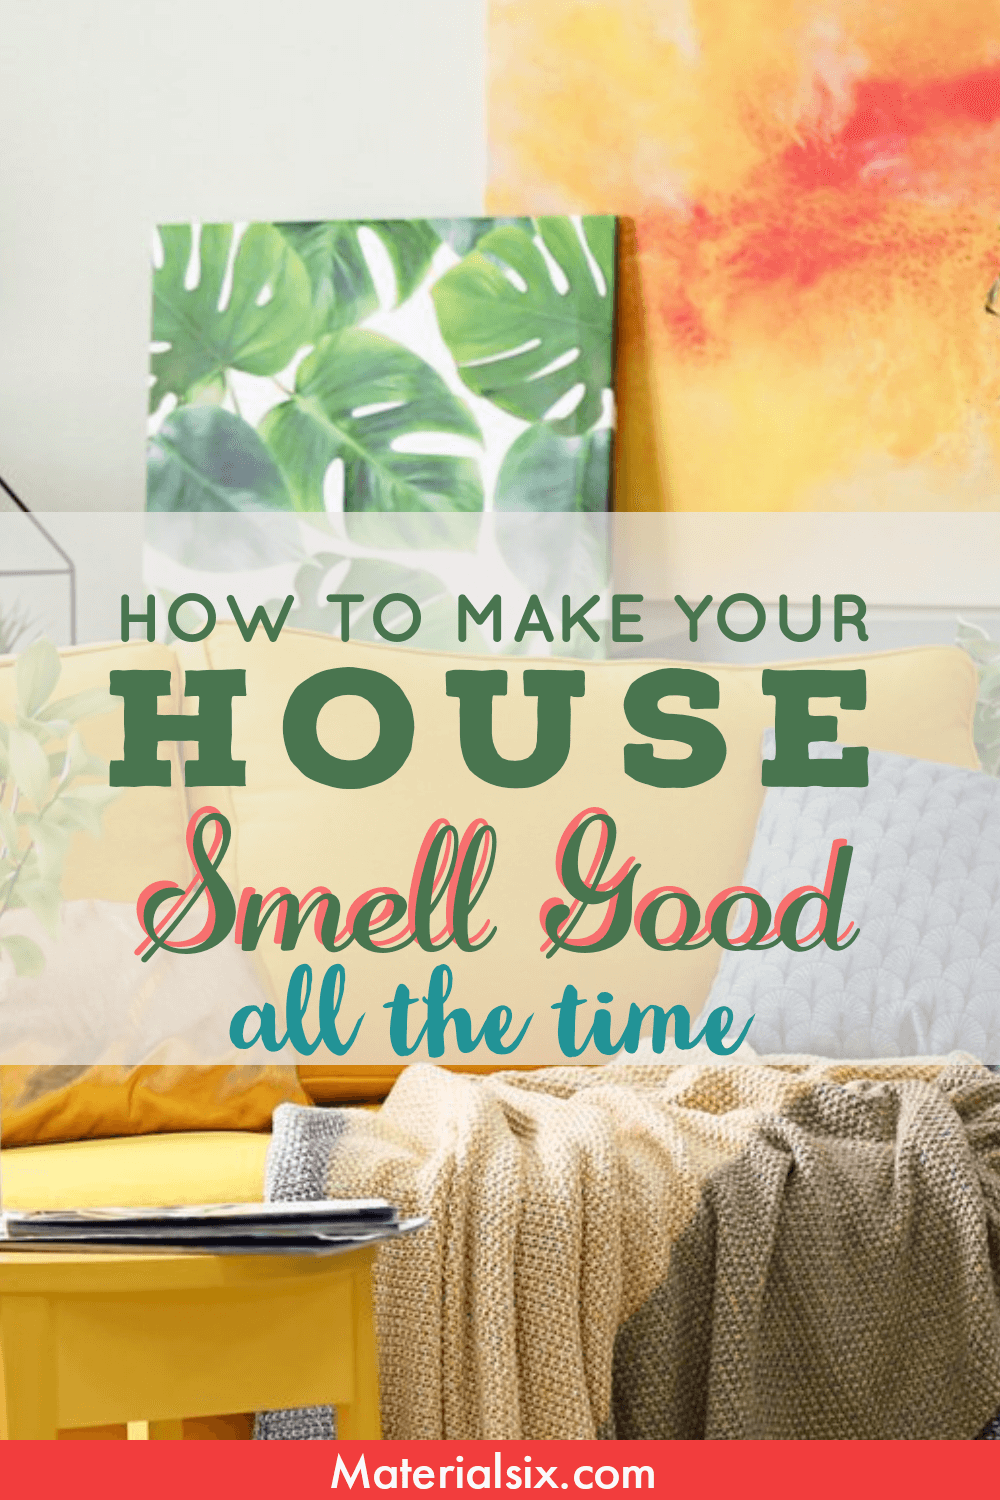 Tips and tricks on how to make your house smell good all the time for cheap.